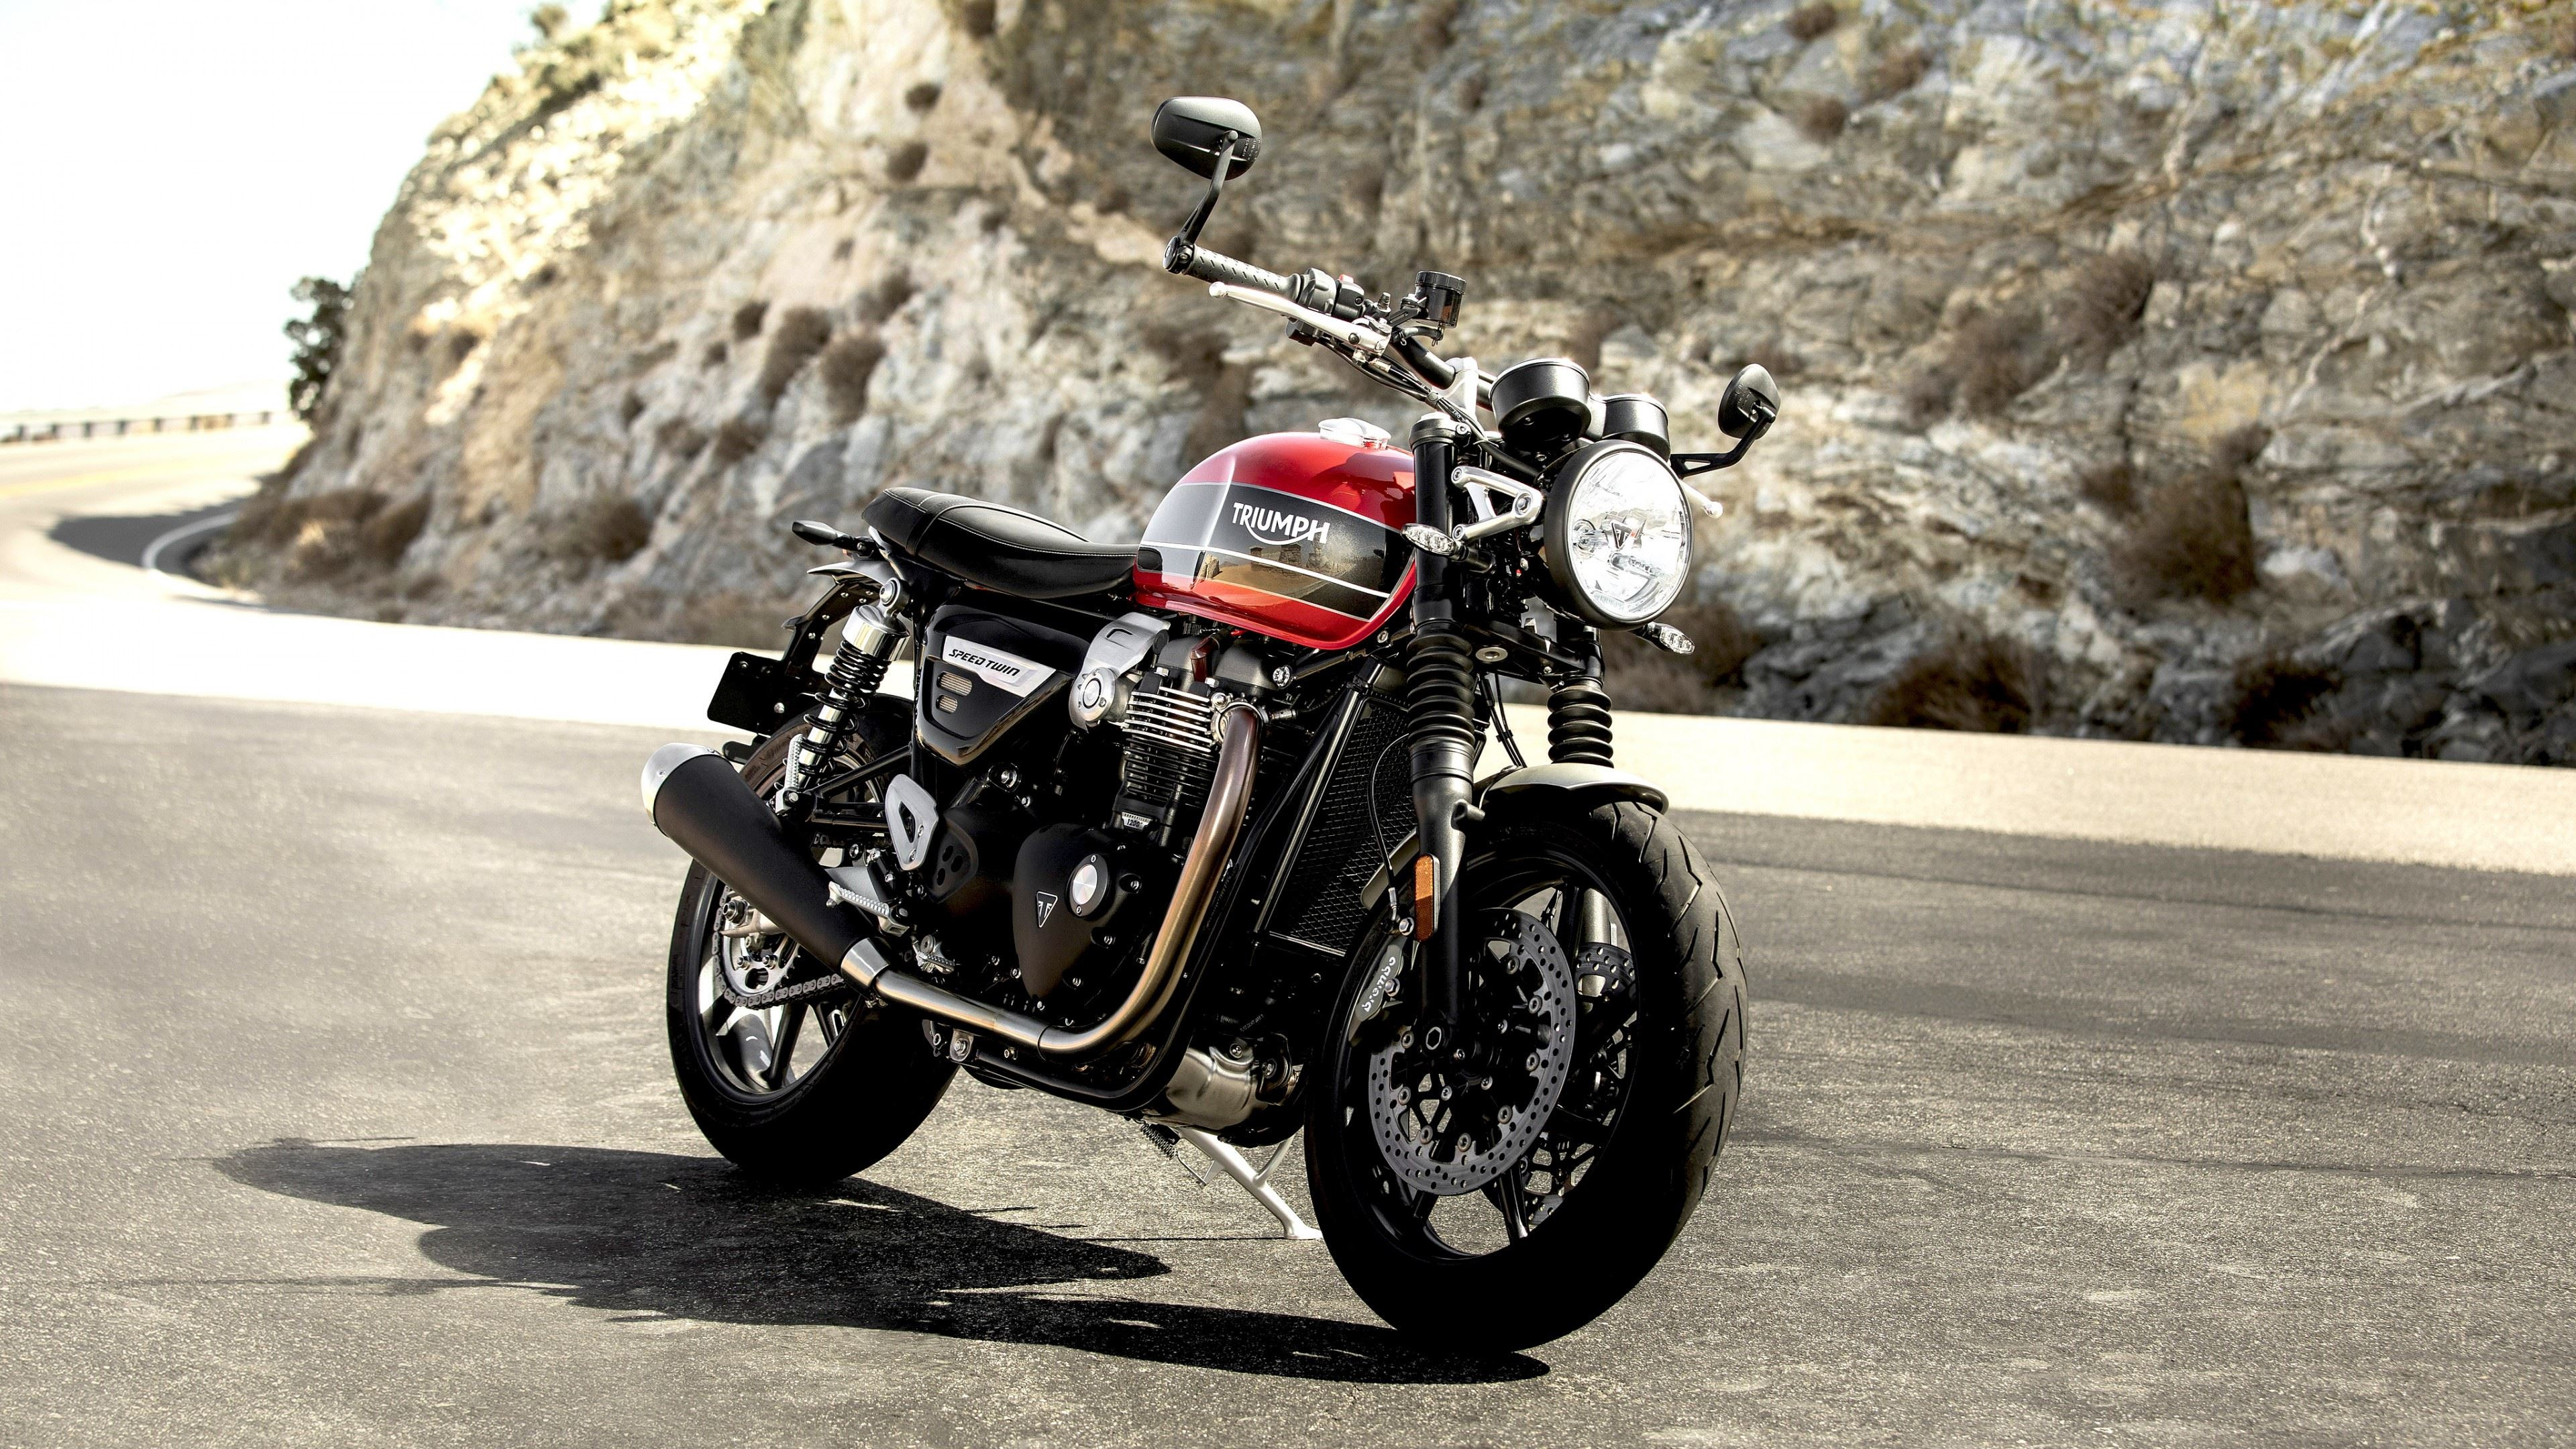 Triumph Speed Twin wallpaper 3840x2160